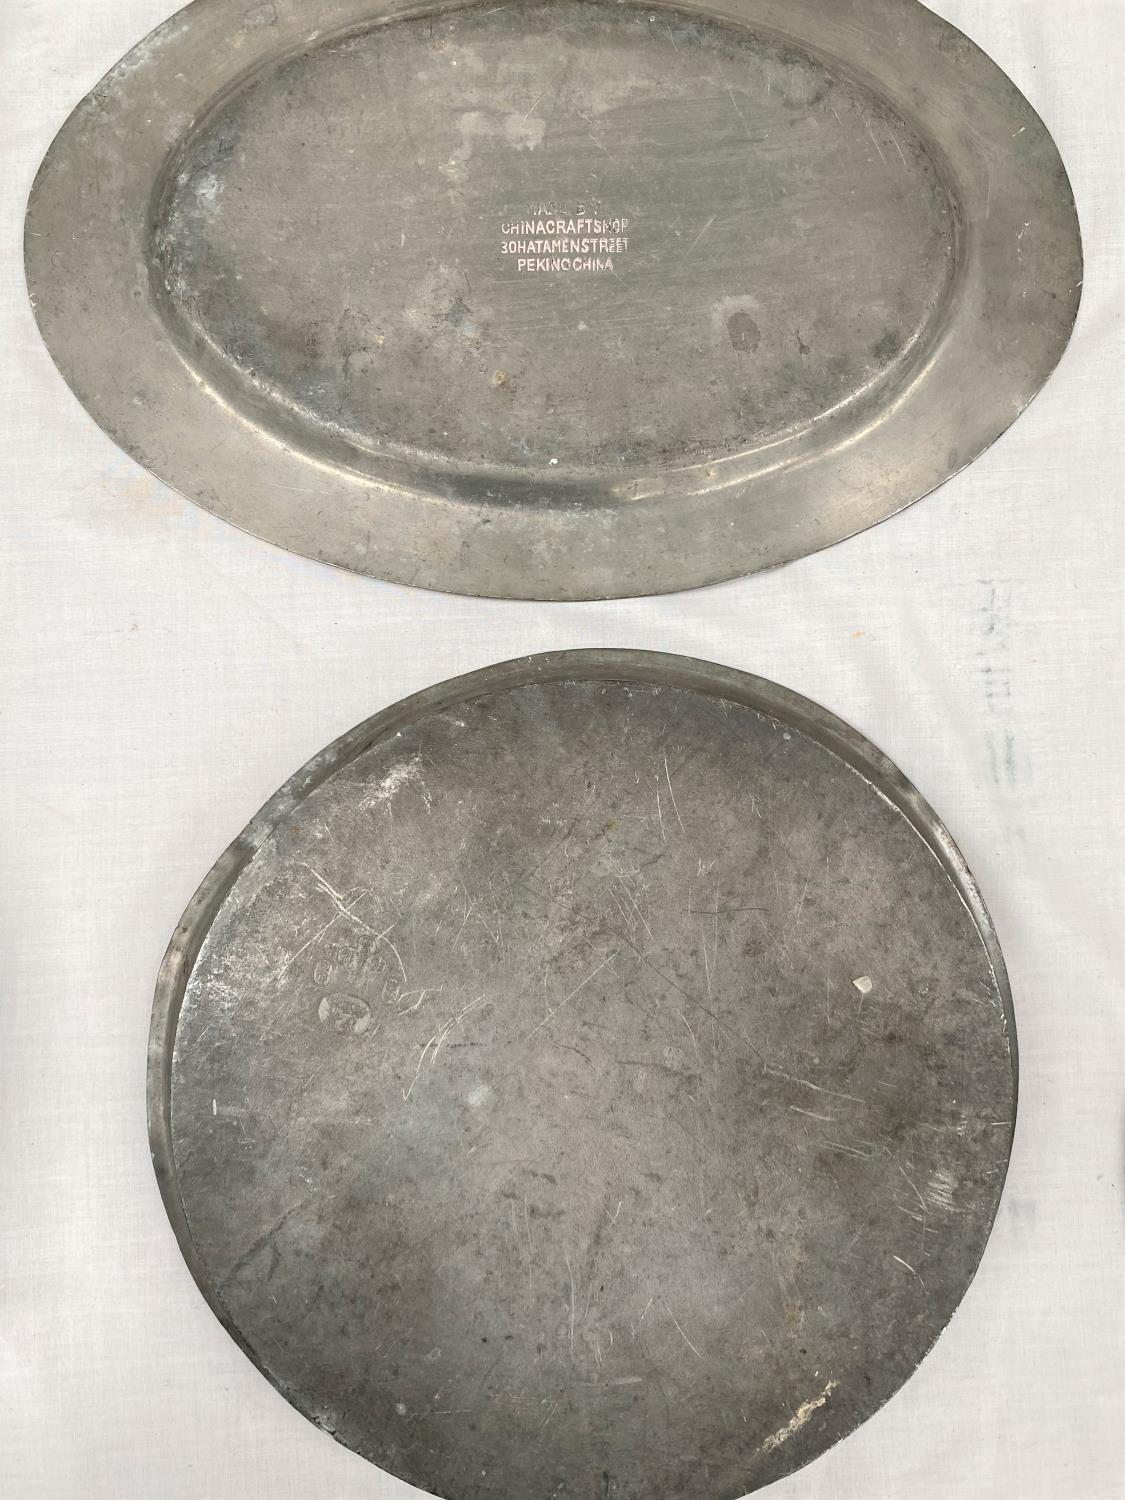 Two 20th century Chinese pewter trays - circular one with dragons, oval with mythical bird, 34cm x - Image 2 of 2